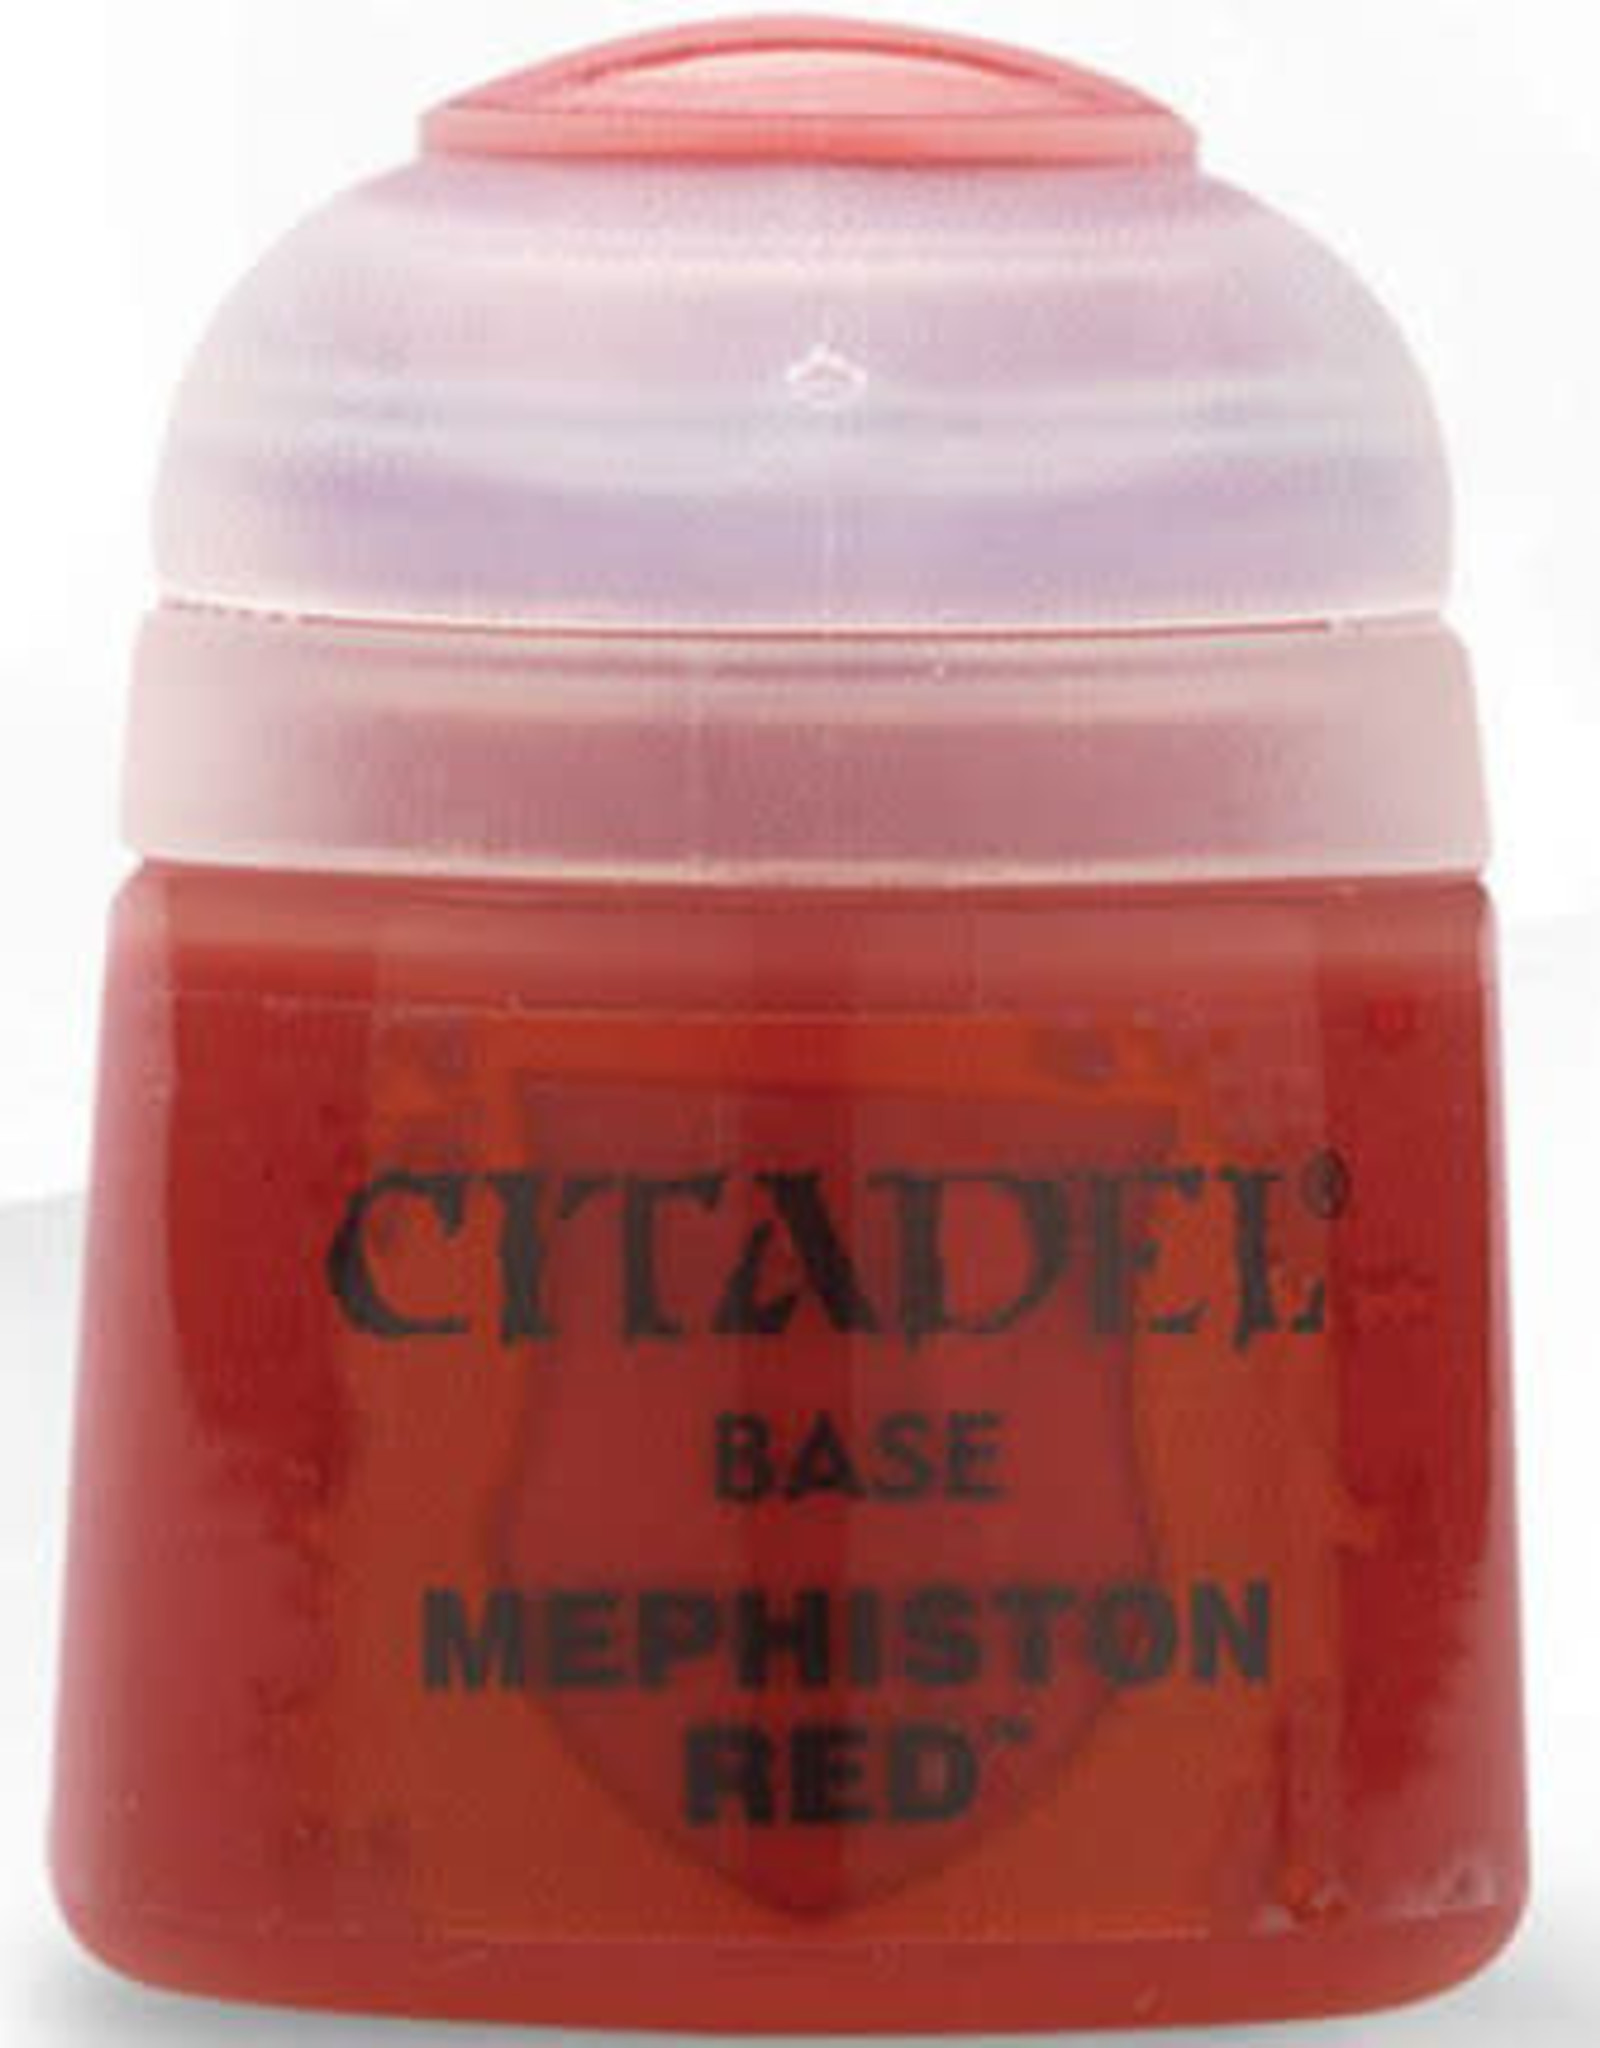 Citadel Base Paint: Mephiston Red